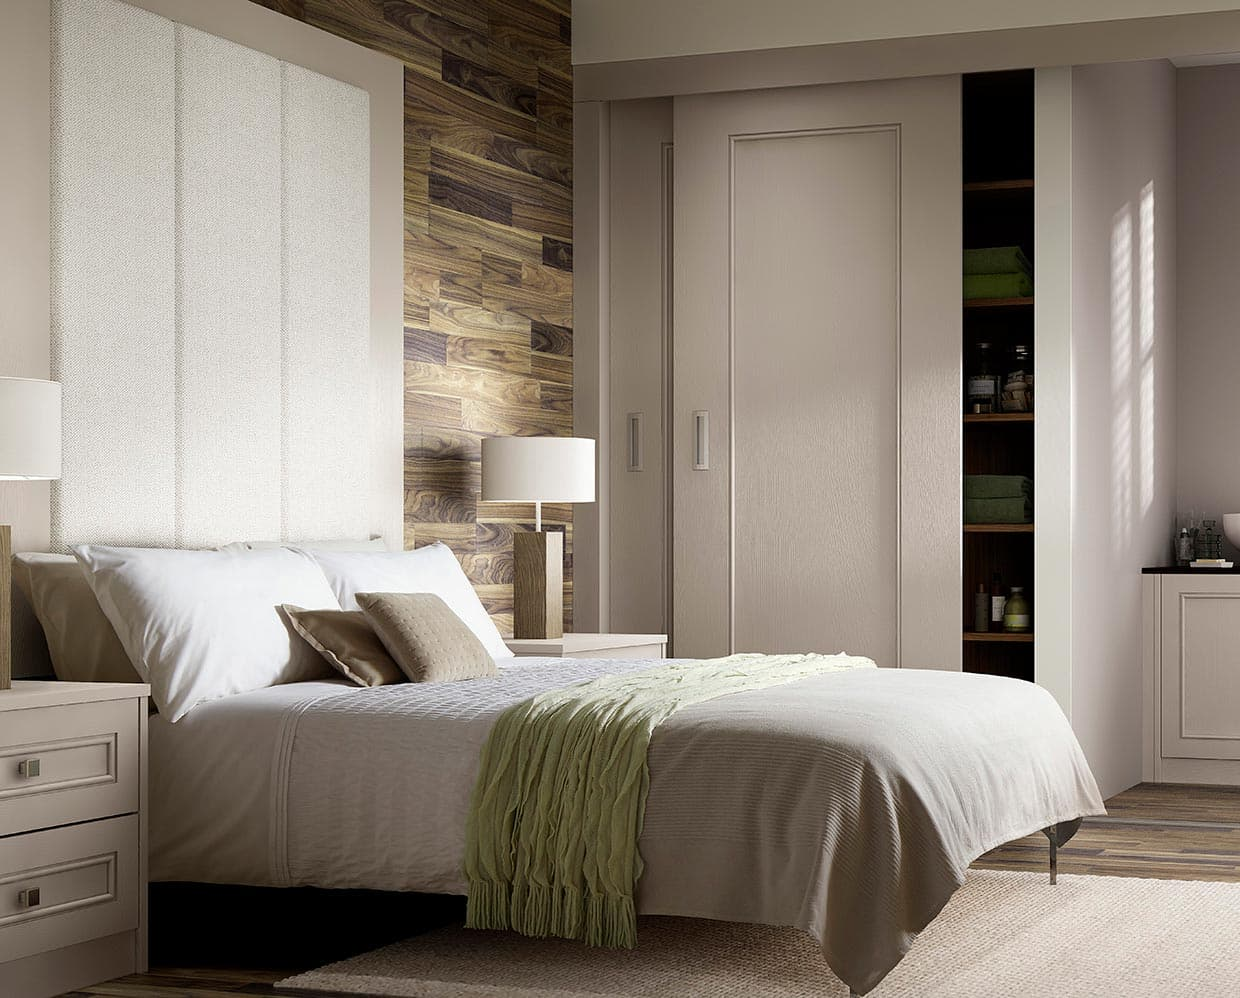 A bedroom styled with open Harpsden sliding wardrobes in light praline.